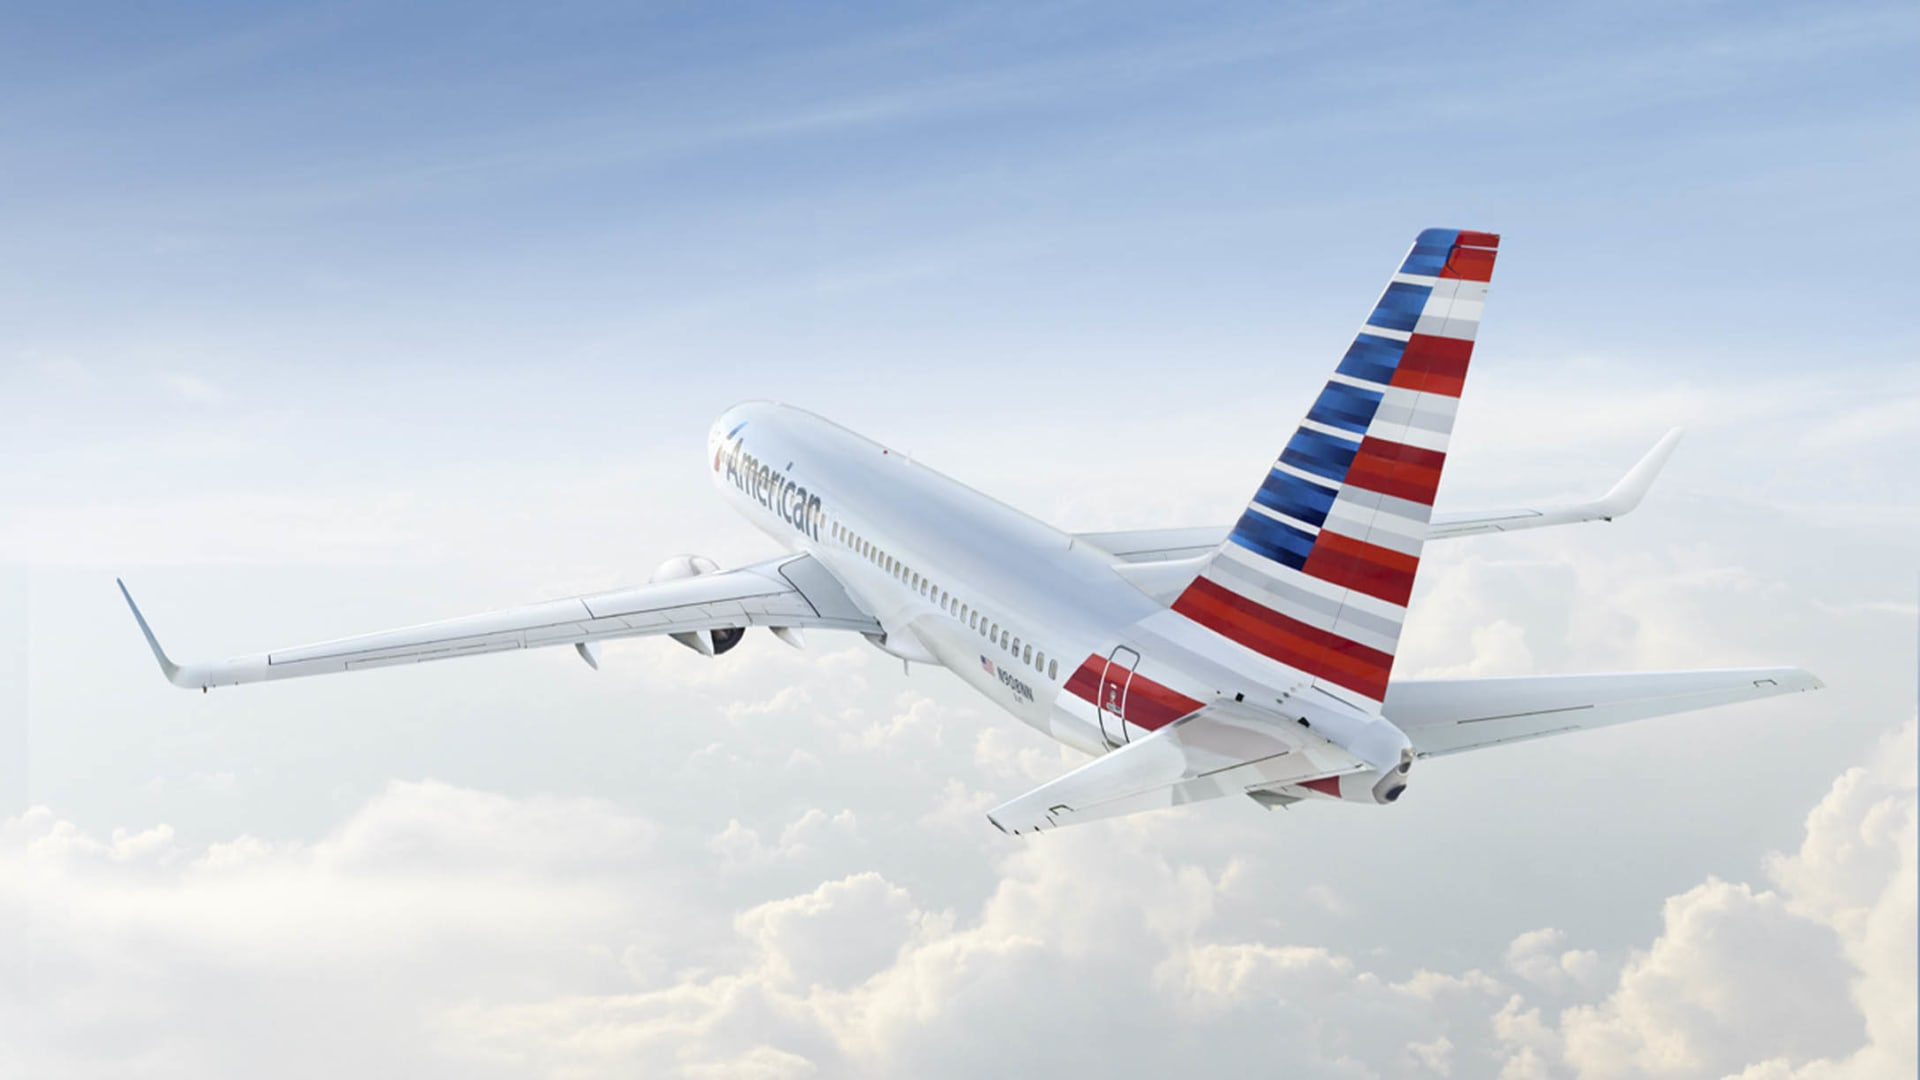 An American Airlines Executive Had a Brilliant Idea. It Changed Passengers' Lives Forever